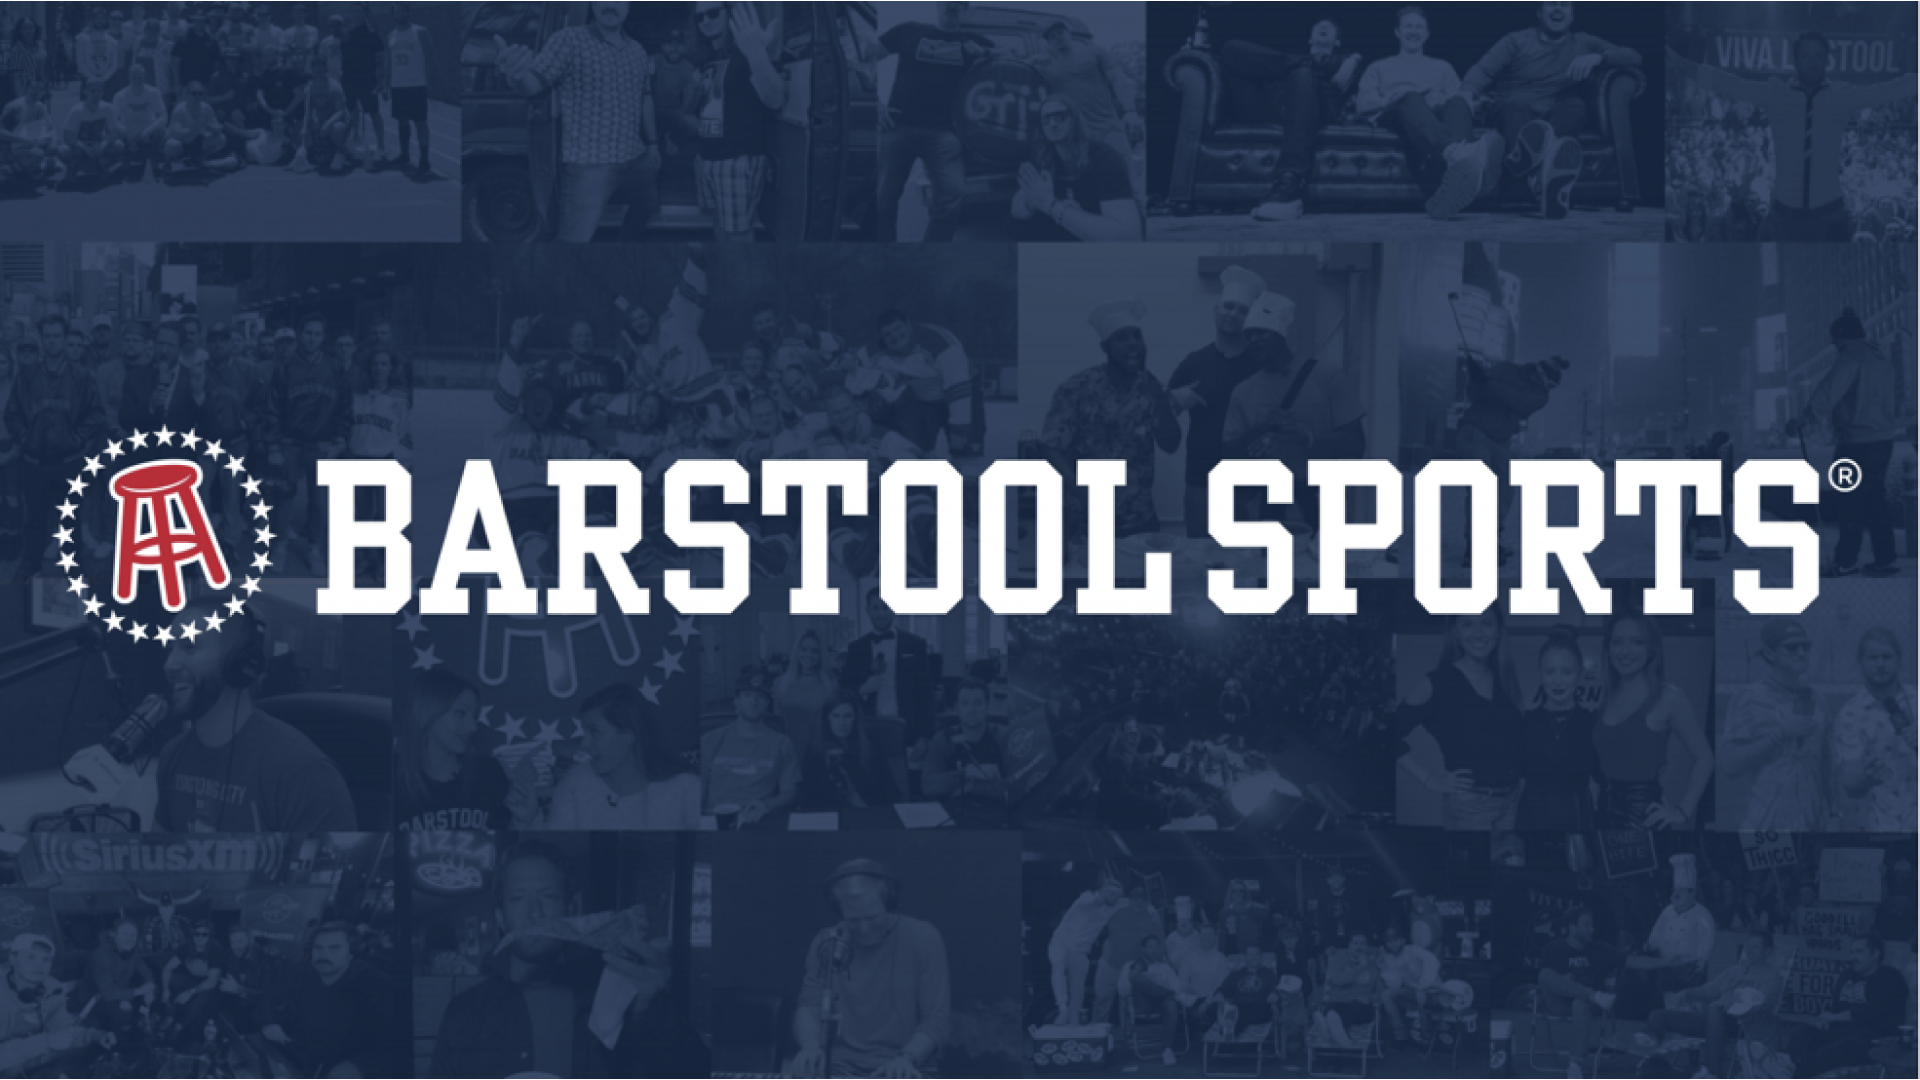 How Barstool Sports built its Brand